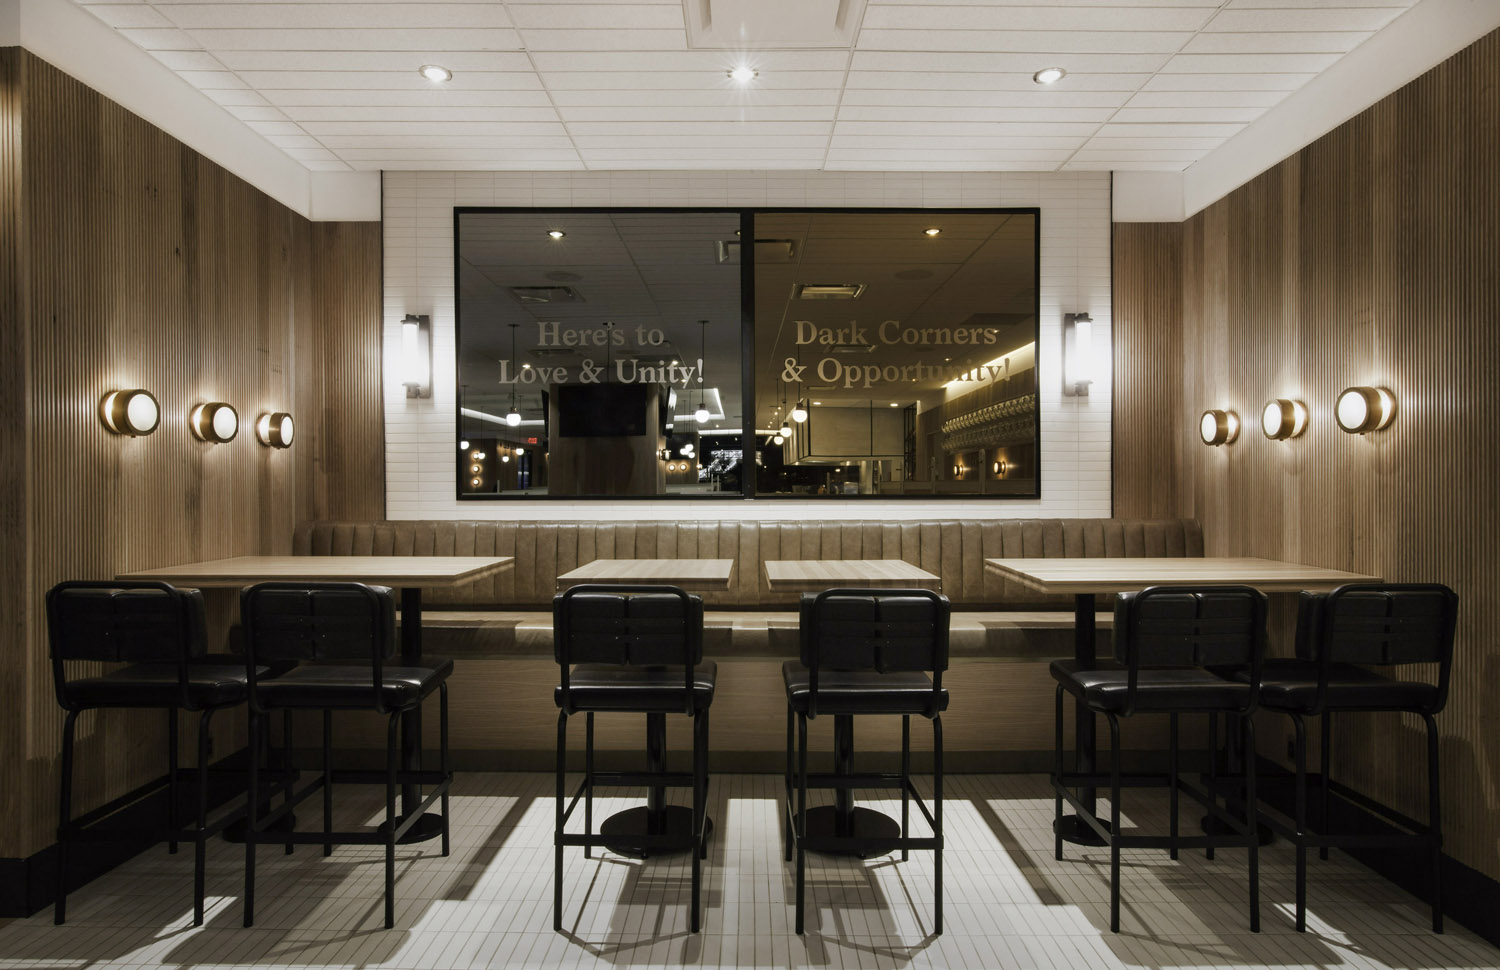 Brand identity and interior graphics by Glasfurd & Walker and interior design by Ste Marie for US and Canadian restaurant chain prototype Earls.67